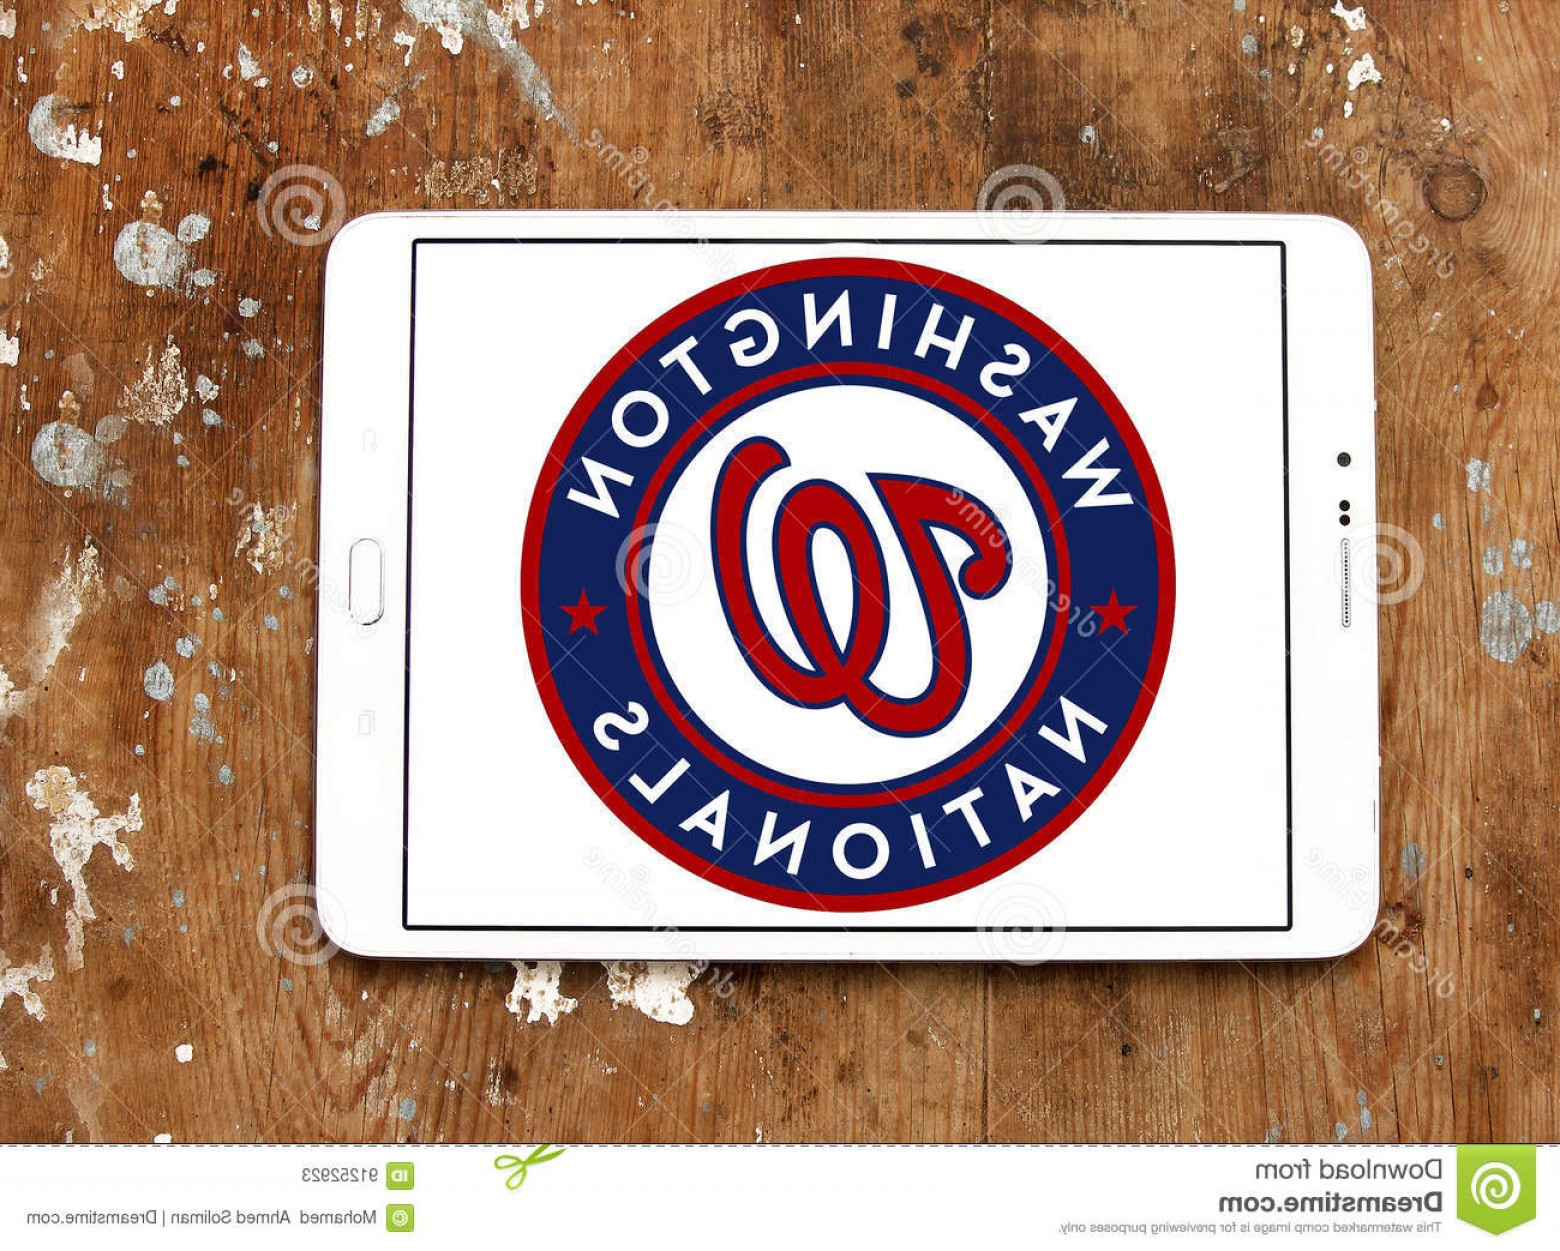 Washington Nationals Logo Vector: Editorial Stock Photo Washington Nationals Baseball Team Logo Samsung Tablet Wooden Background Professional Image